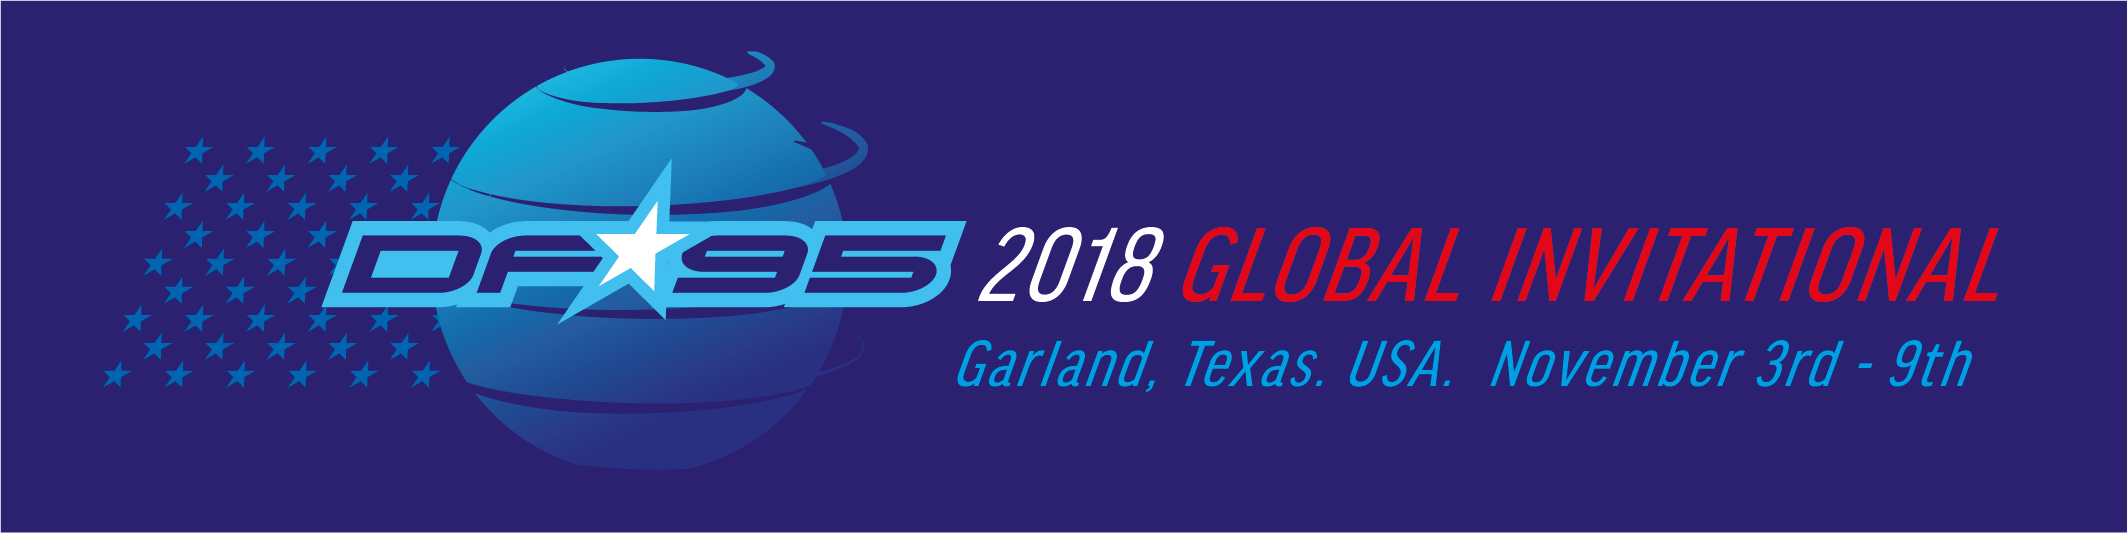 2018 DF95 Event Logo